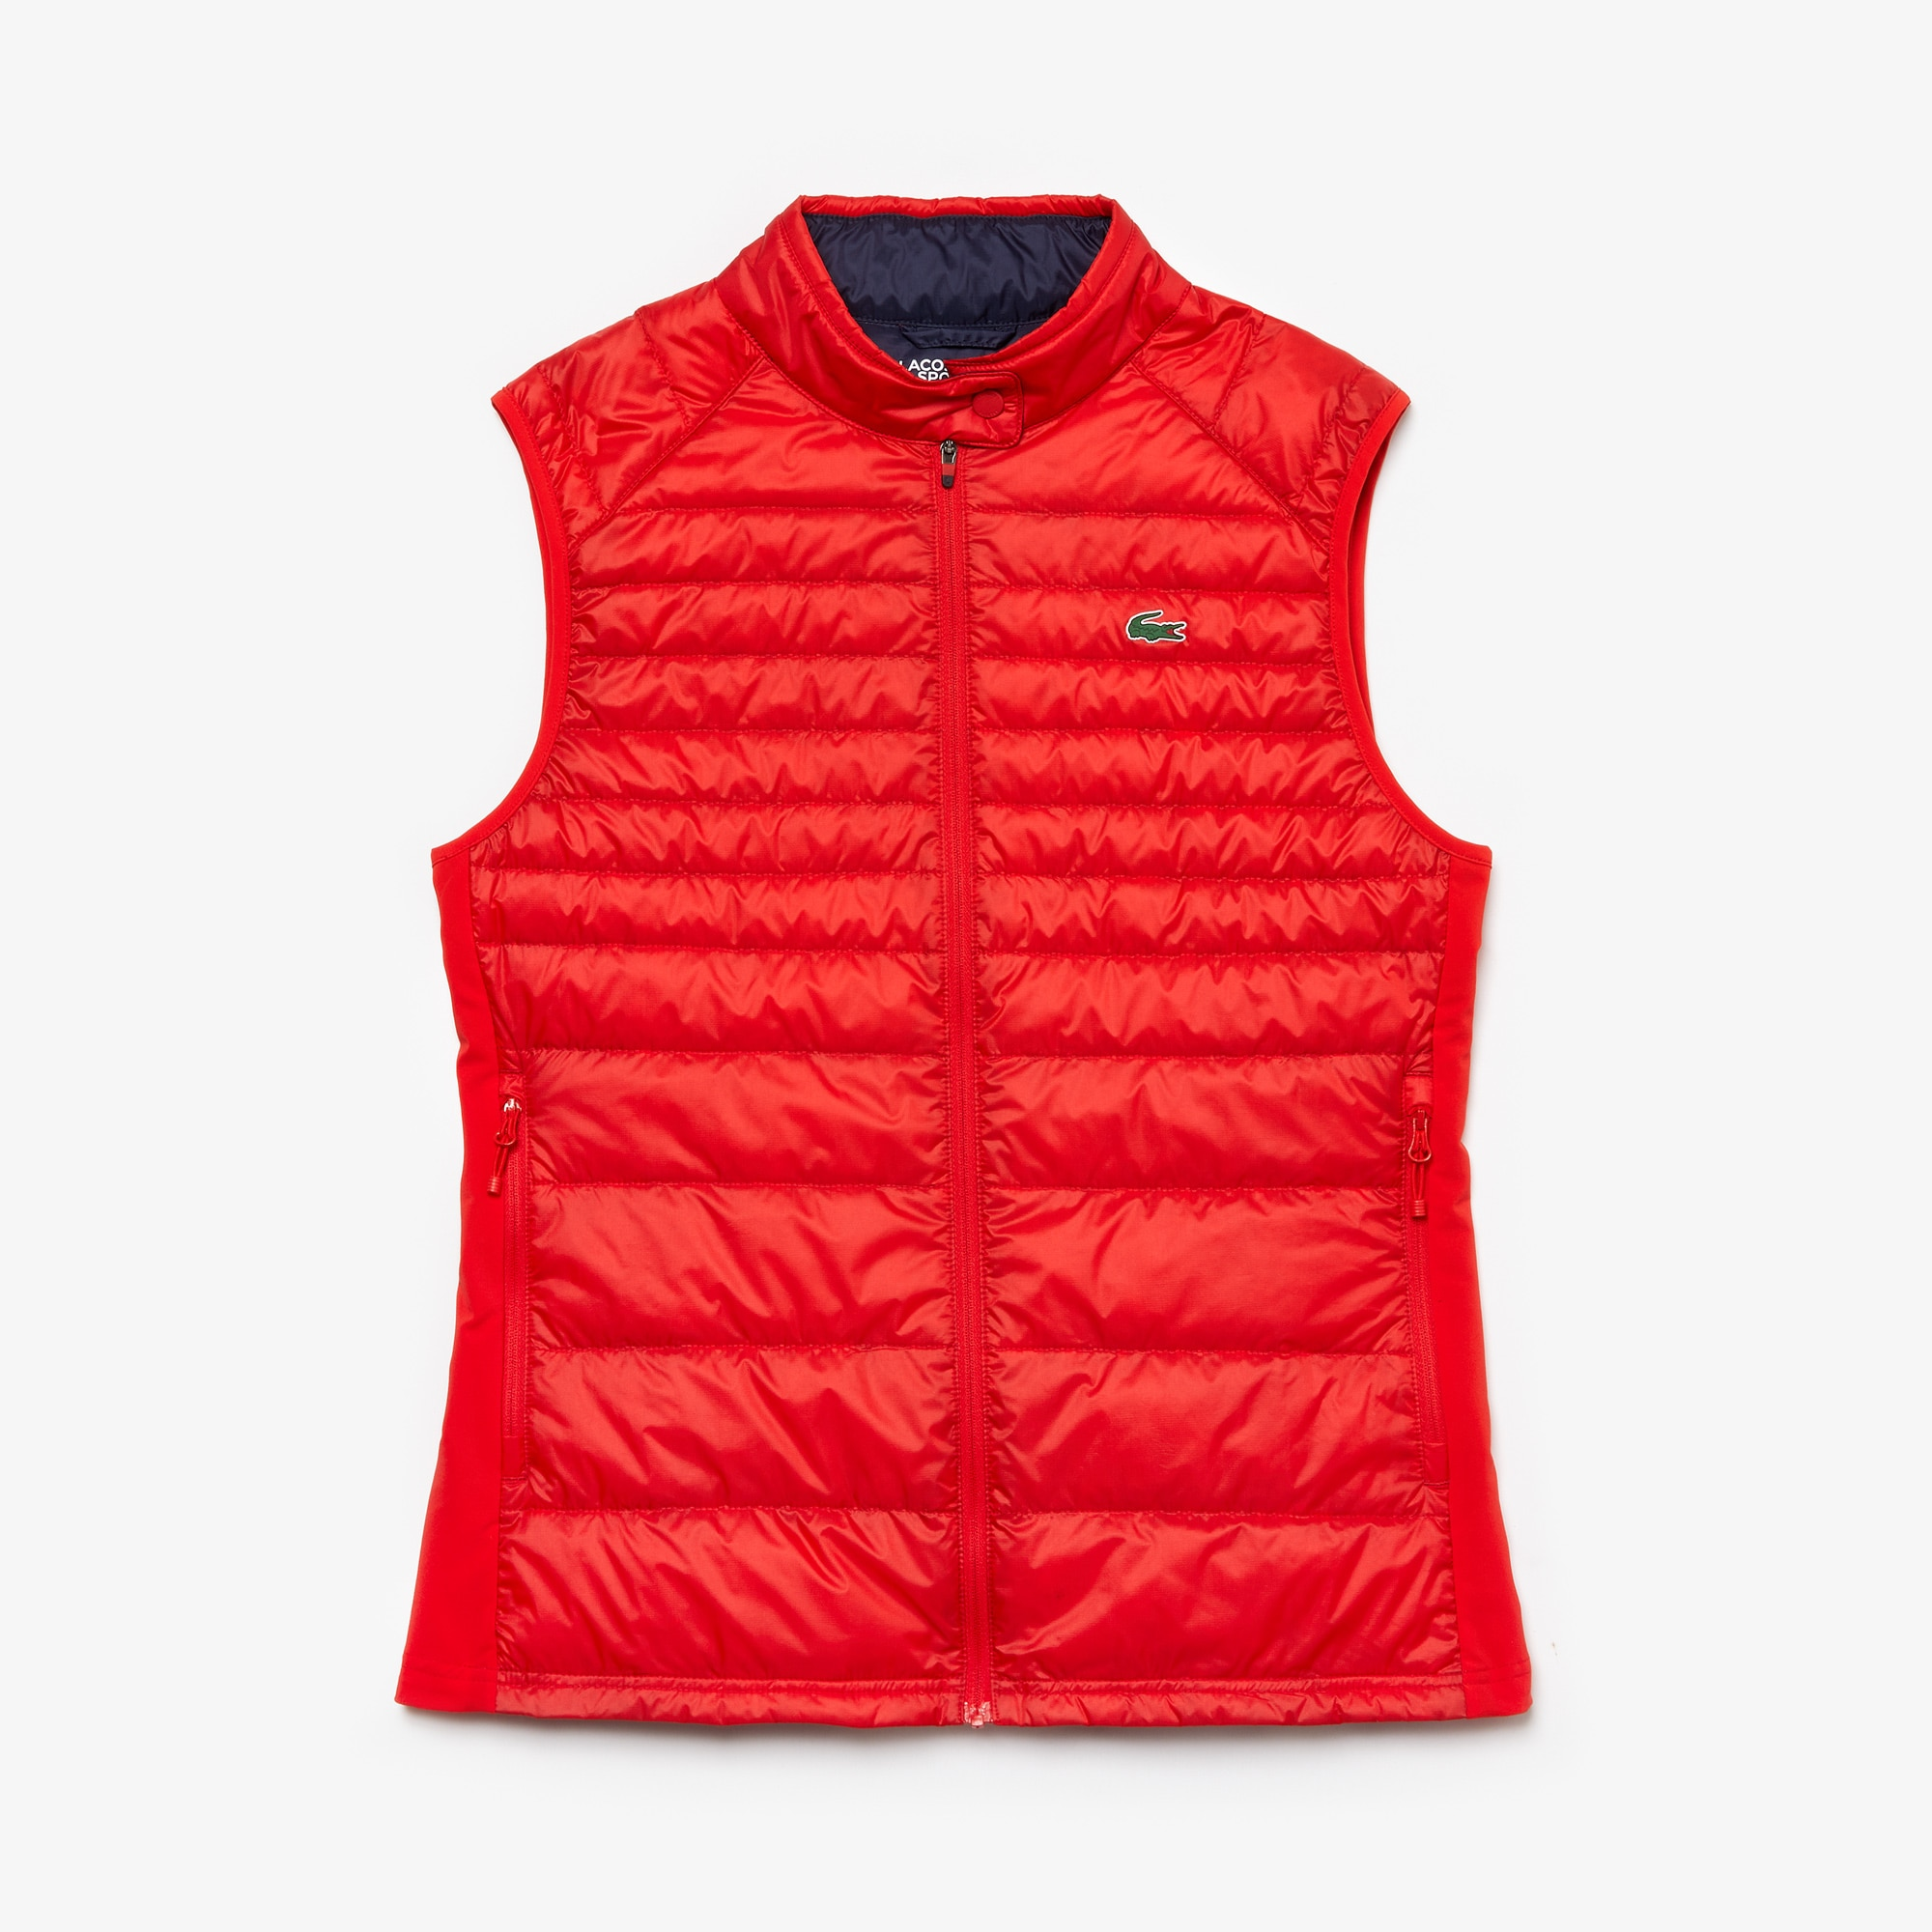 Women's SPORT Water-Resistant Quilted Technical Golf Vest